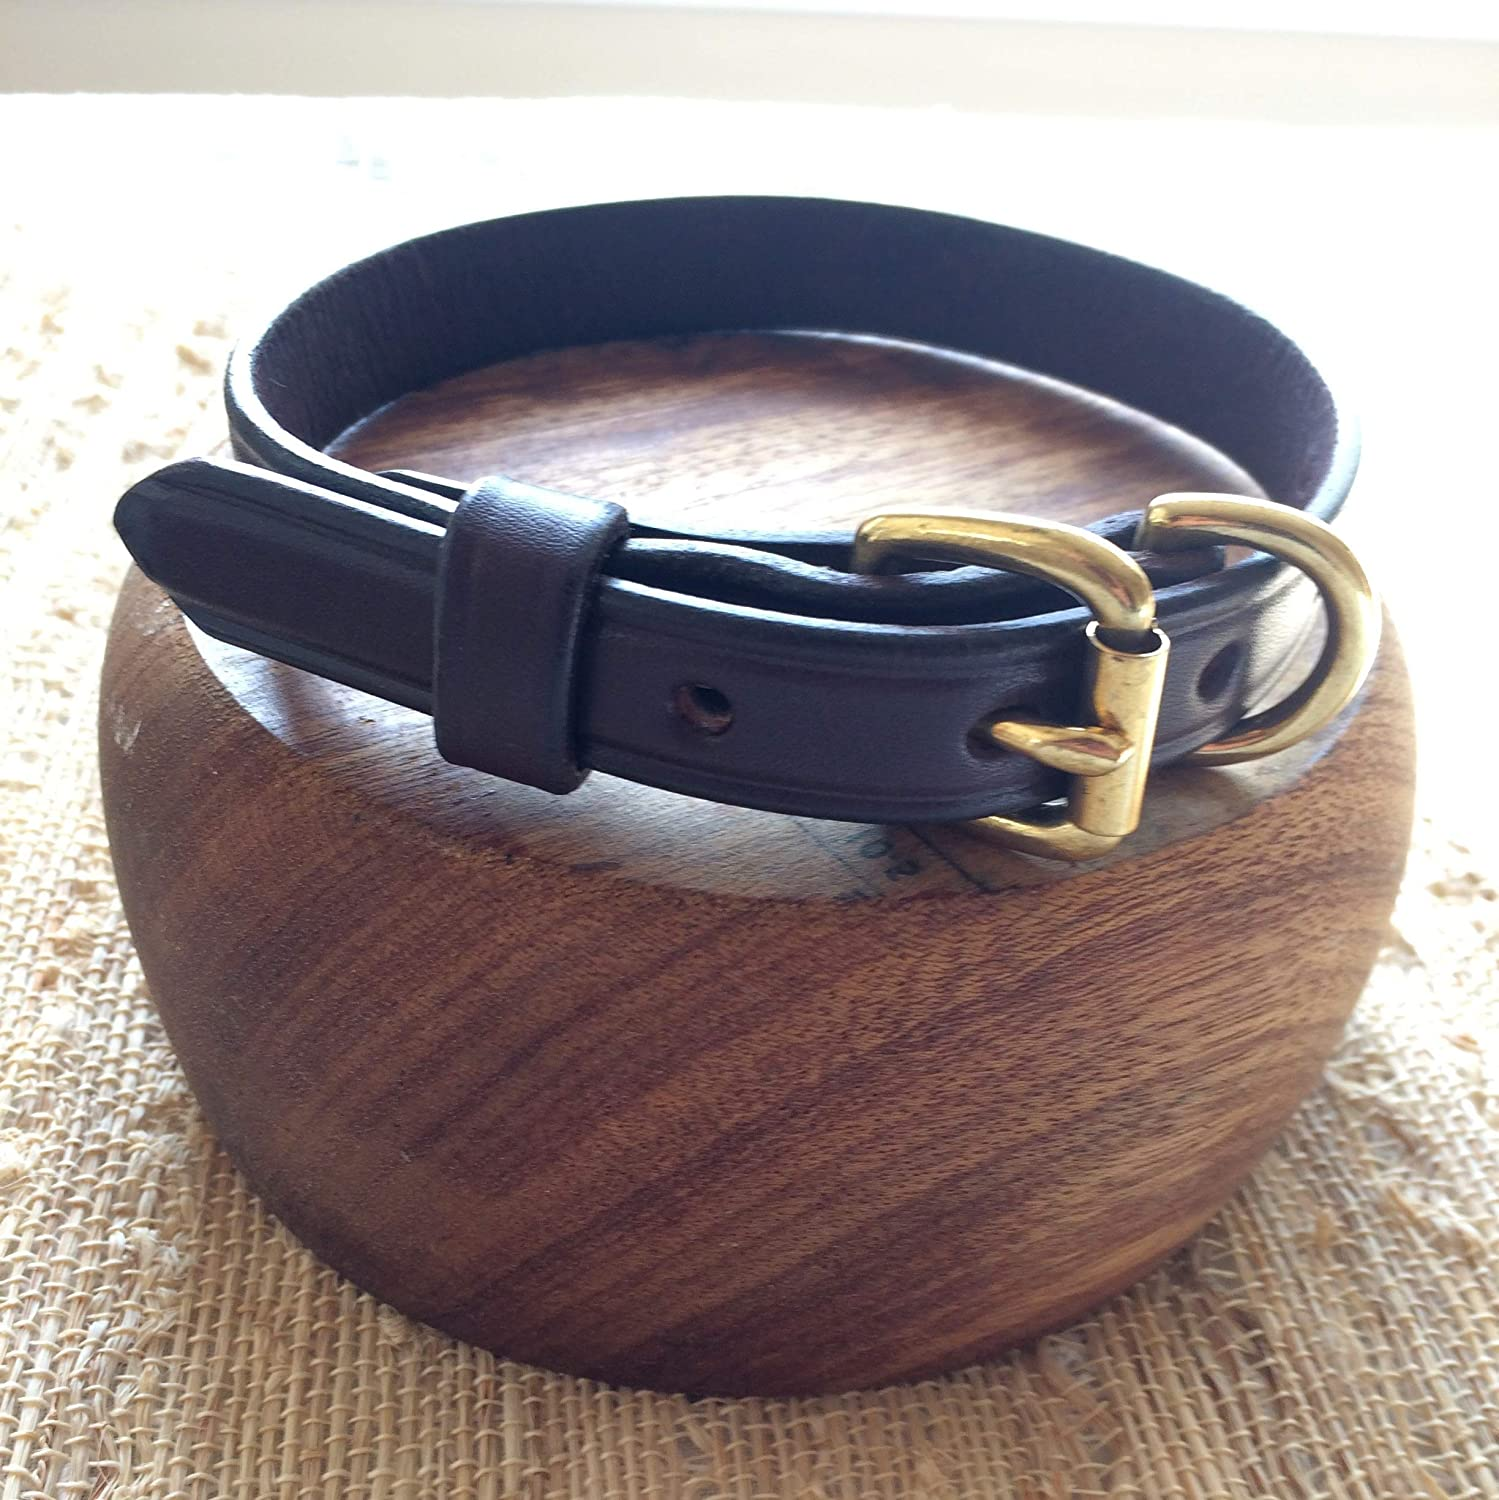 Dog Collar - Genuine Bridle Leather - Solid Brass Hardware - Handmade - Choose Size 12, 14, 16, 18, 20, 22 Inches - Great for Small, Medium, Large Dogs - Perfect Gift for Pet Lovers - By Boxwood & Mum